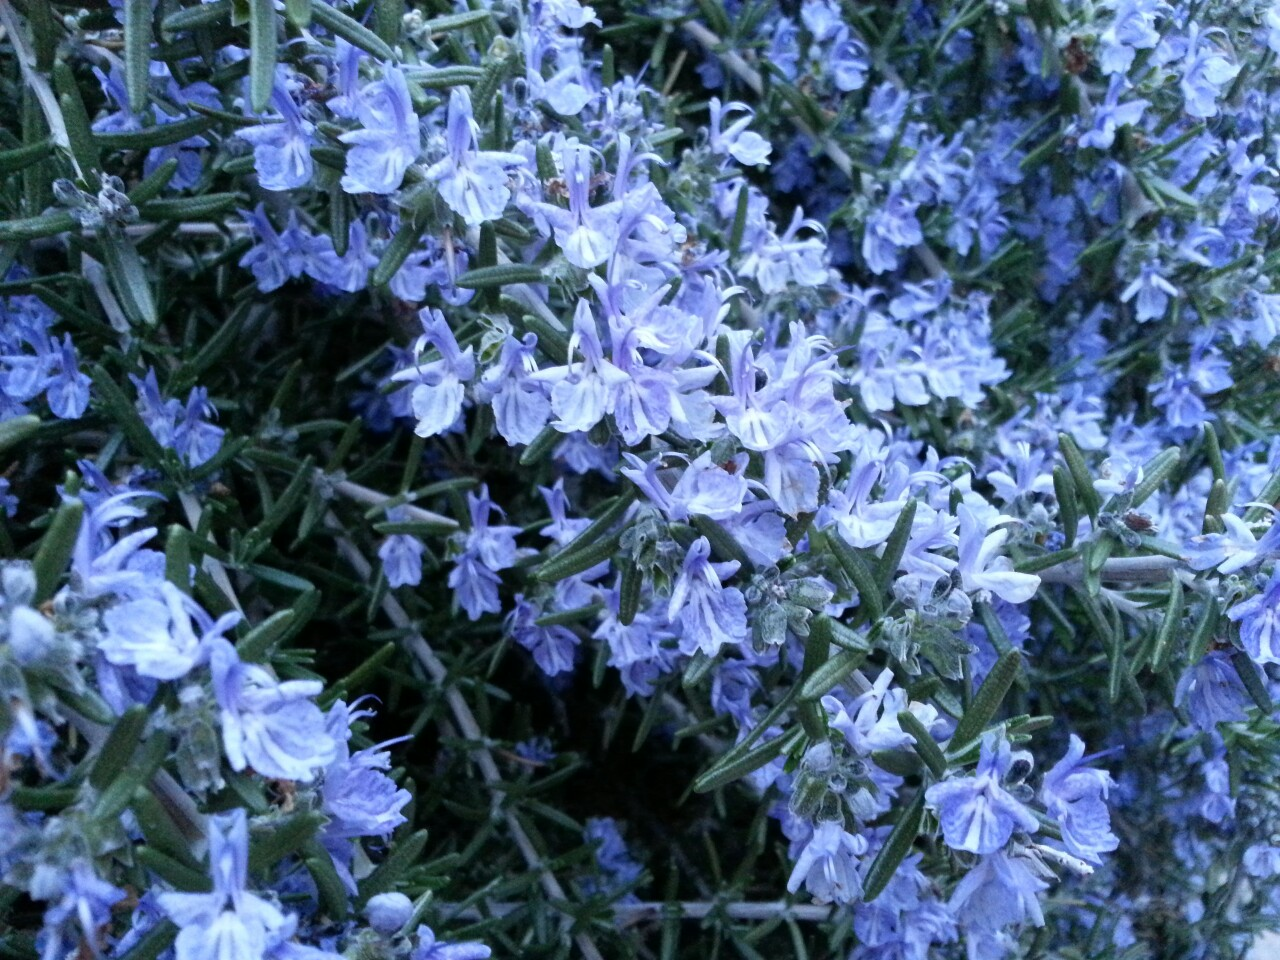 Virgins and Whores: Rosemary's Herbal History ⋆ Sarah Sexy Plants